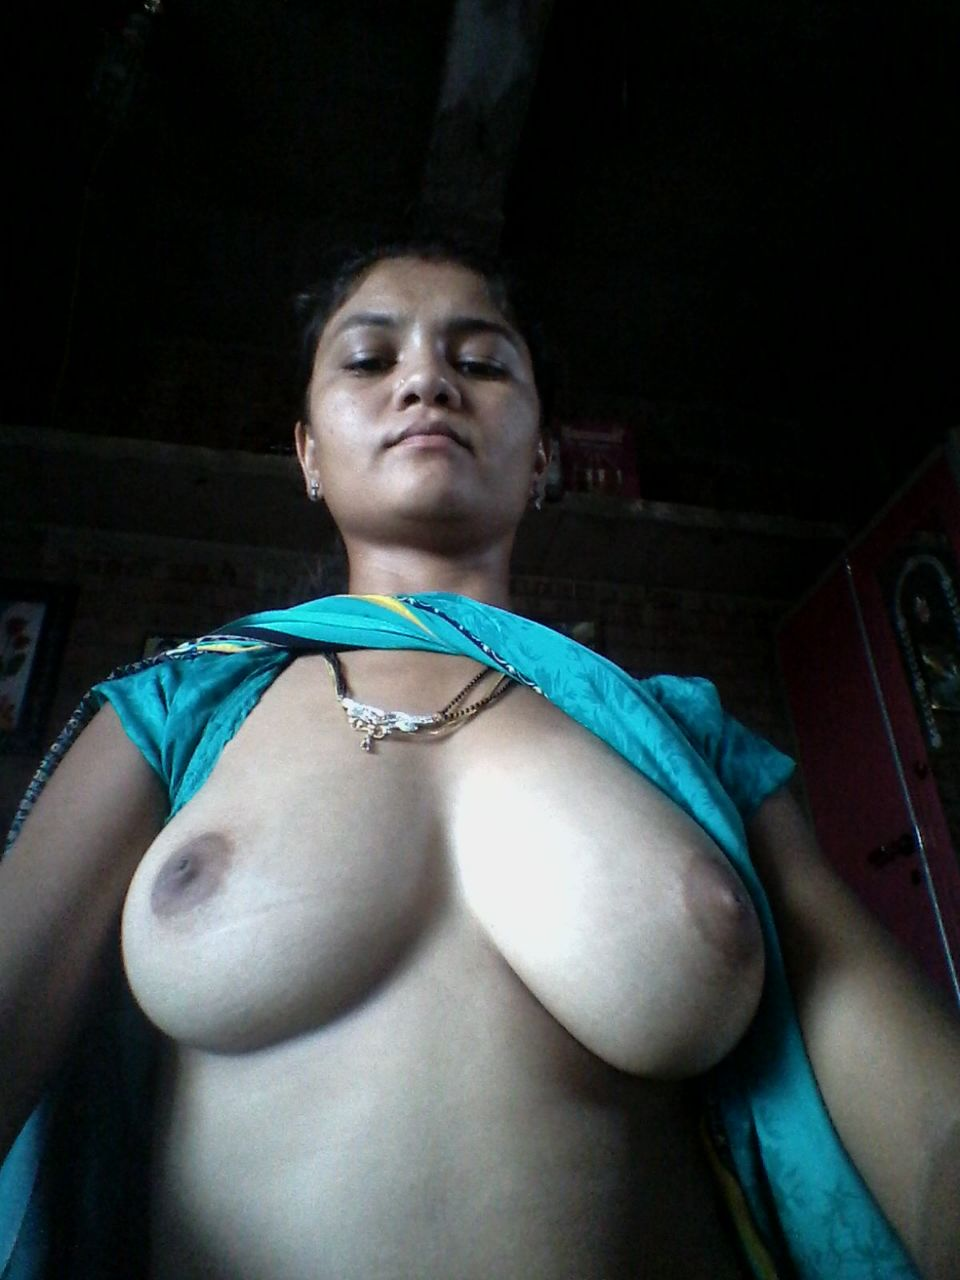 Mallu tv actress nude homemade photos leaked online